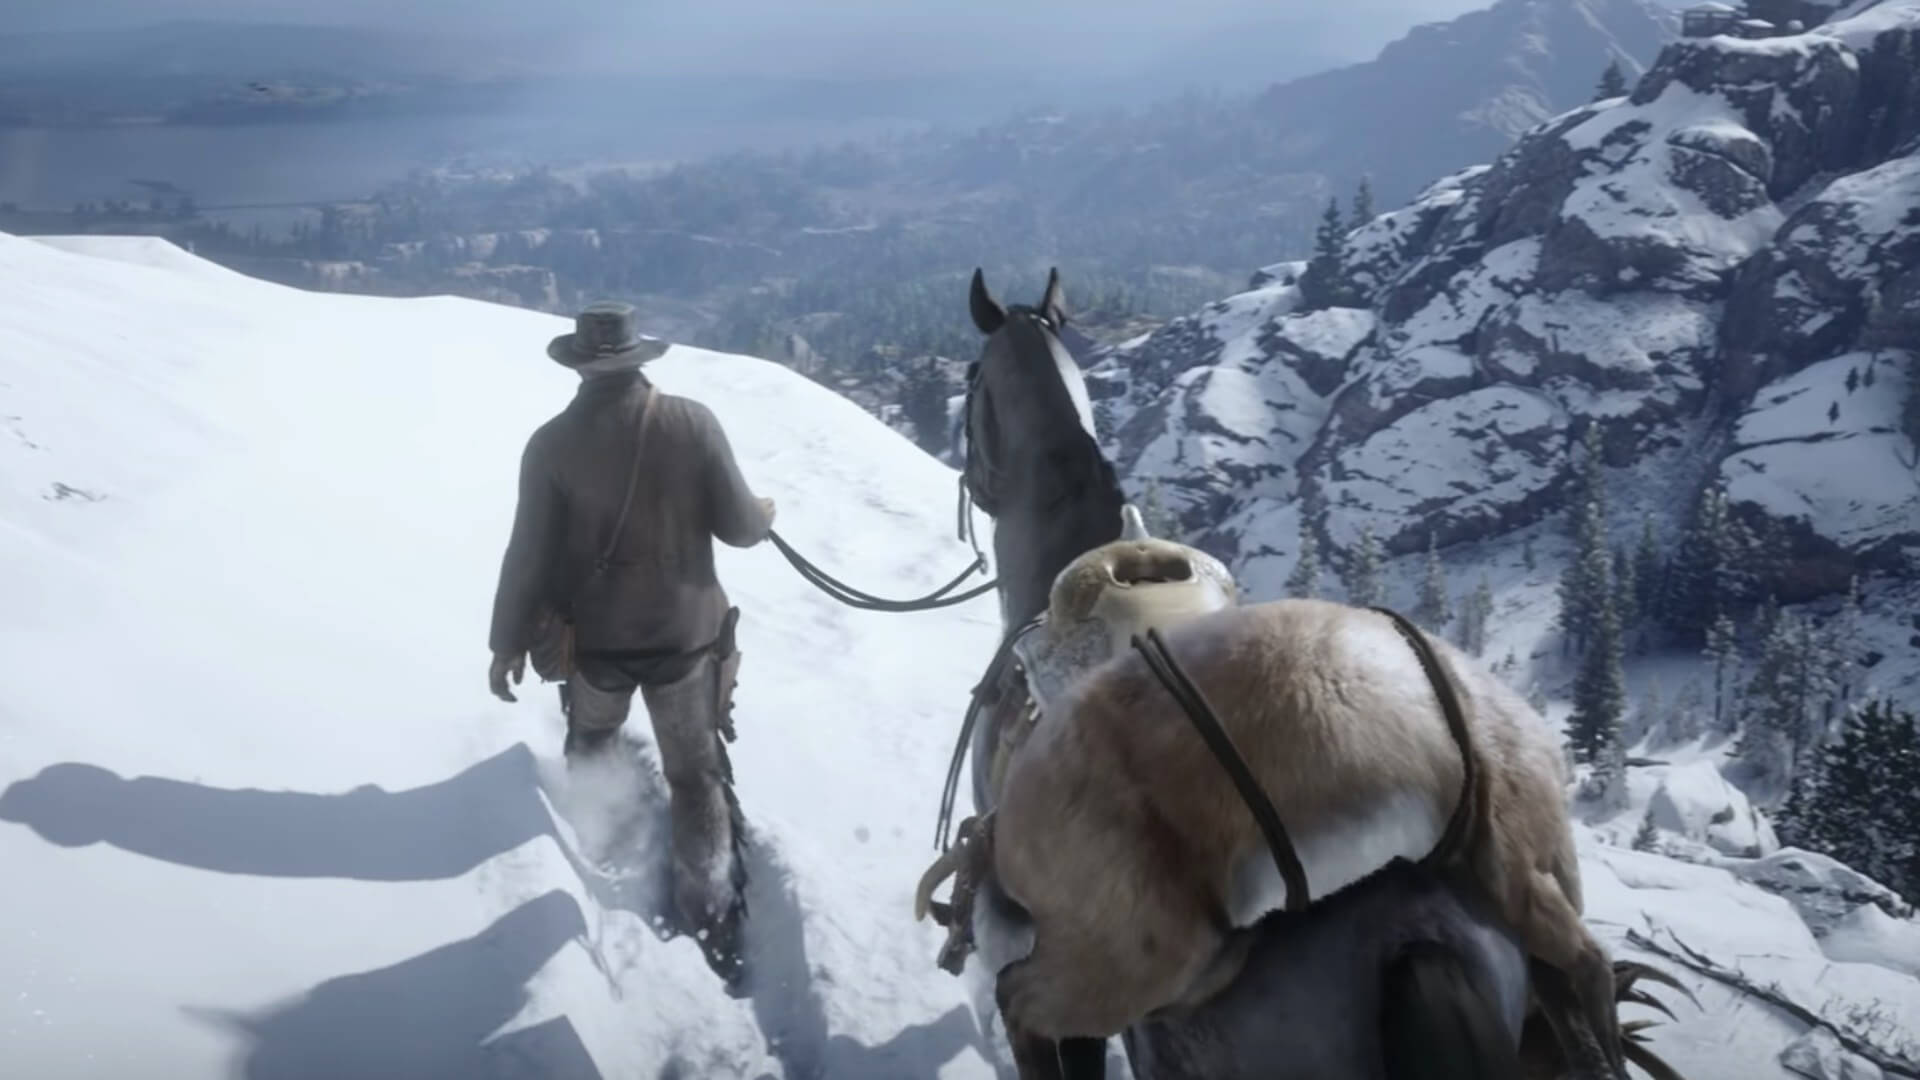 Red Dead Redemption 2 is the biggest entertainment launch of